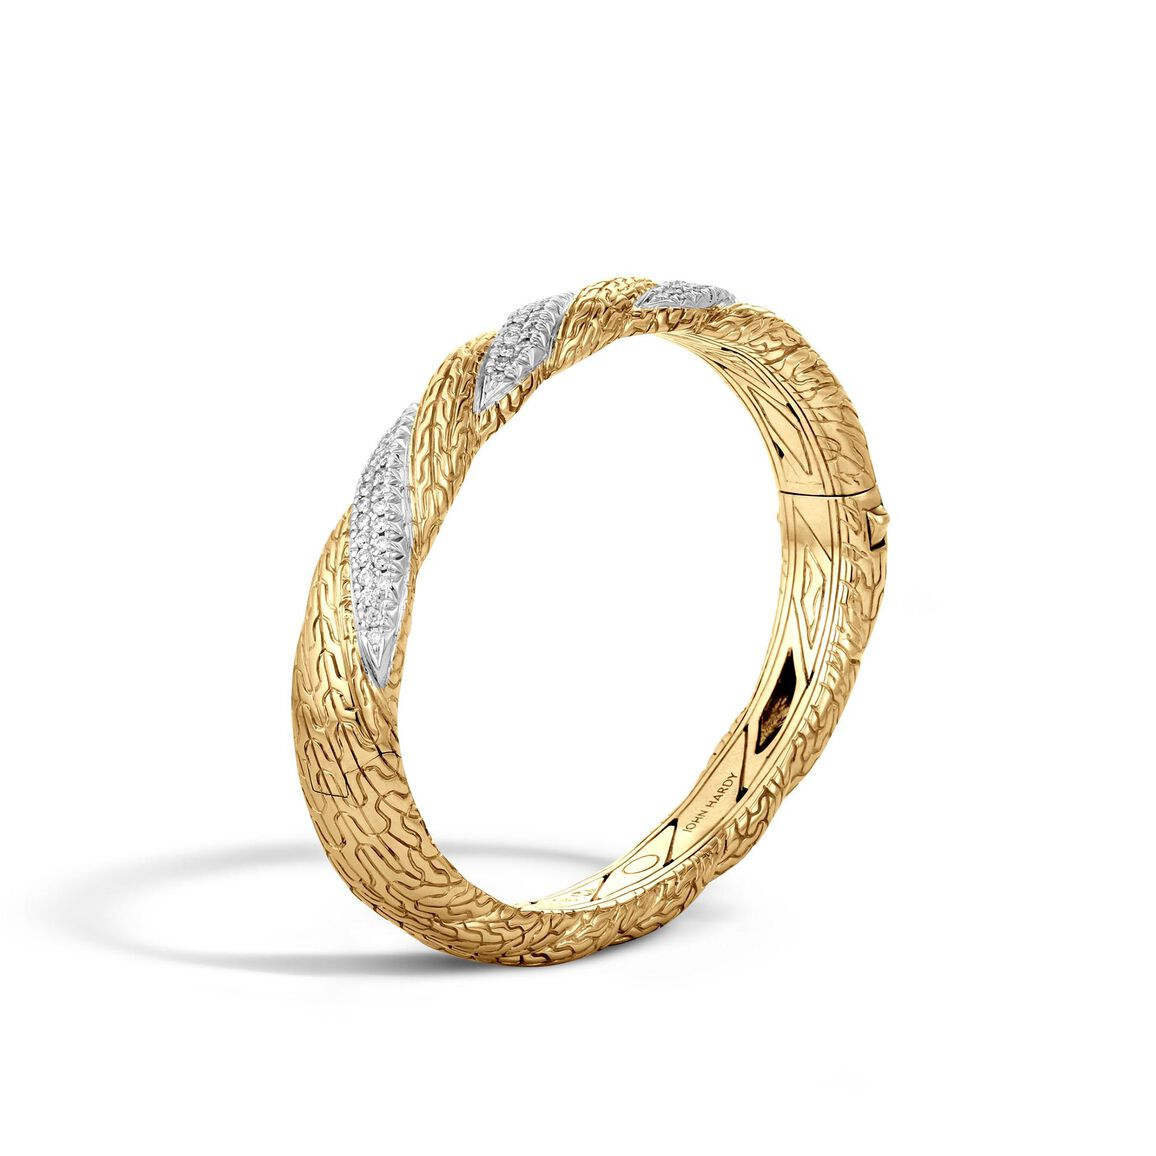 Twisted Chain 9MM Hinged Bangle in 18K Gold with Diamonds